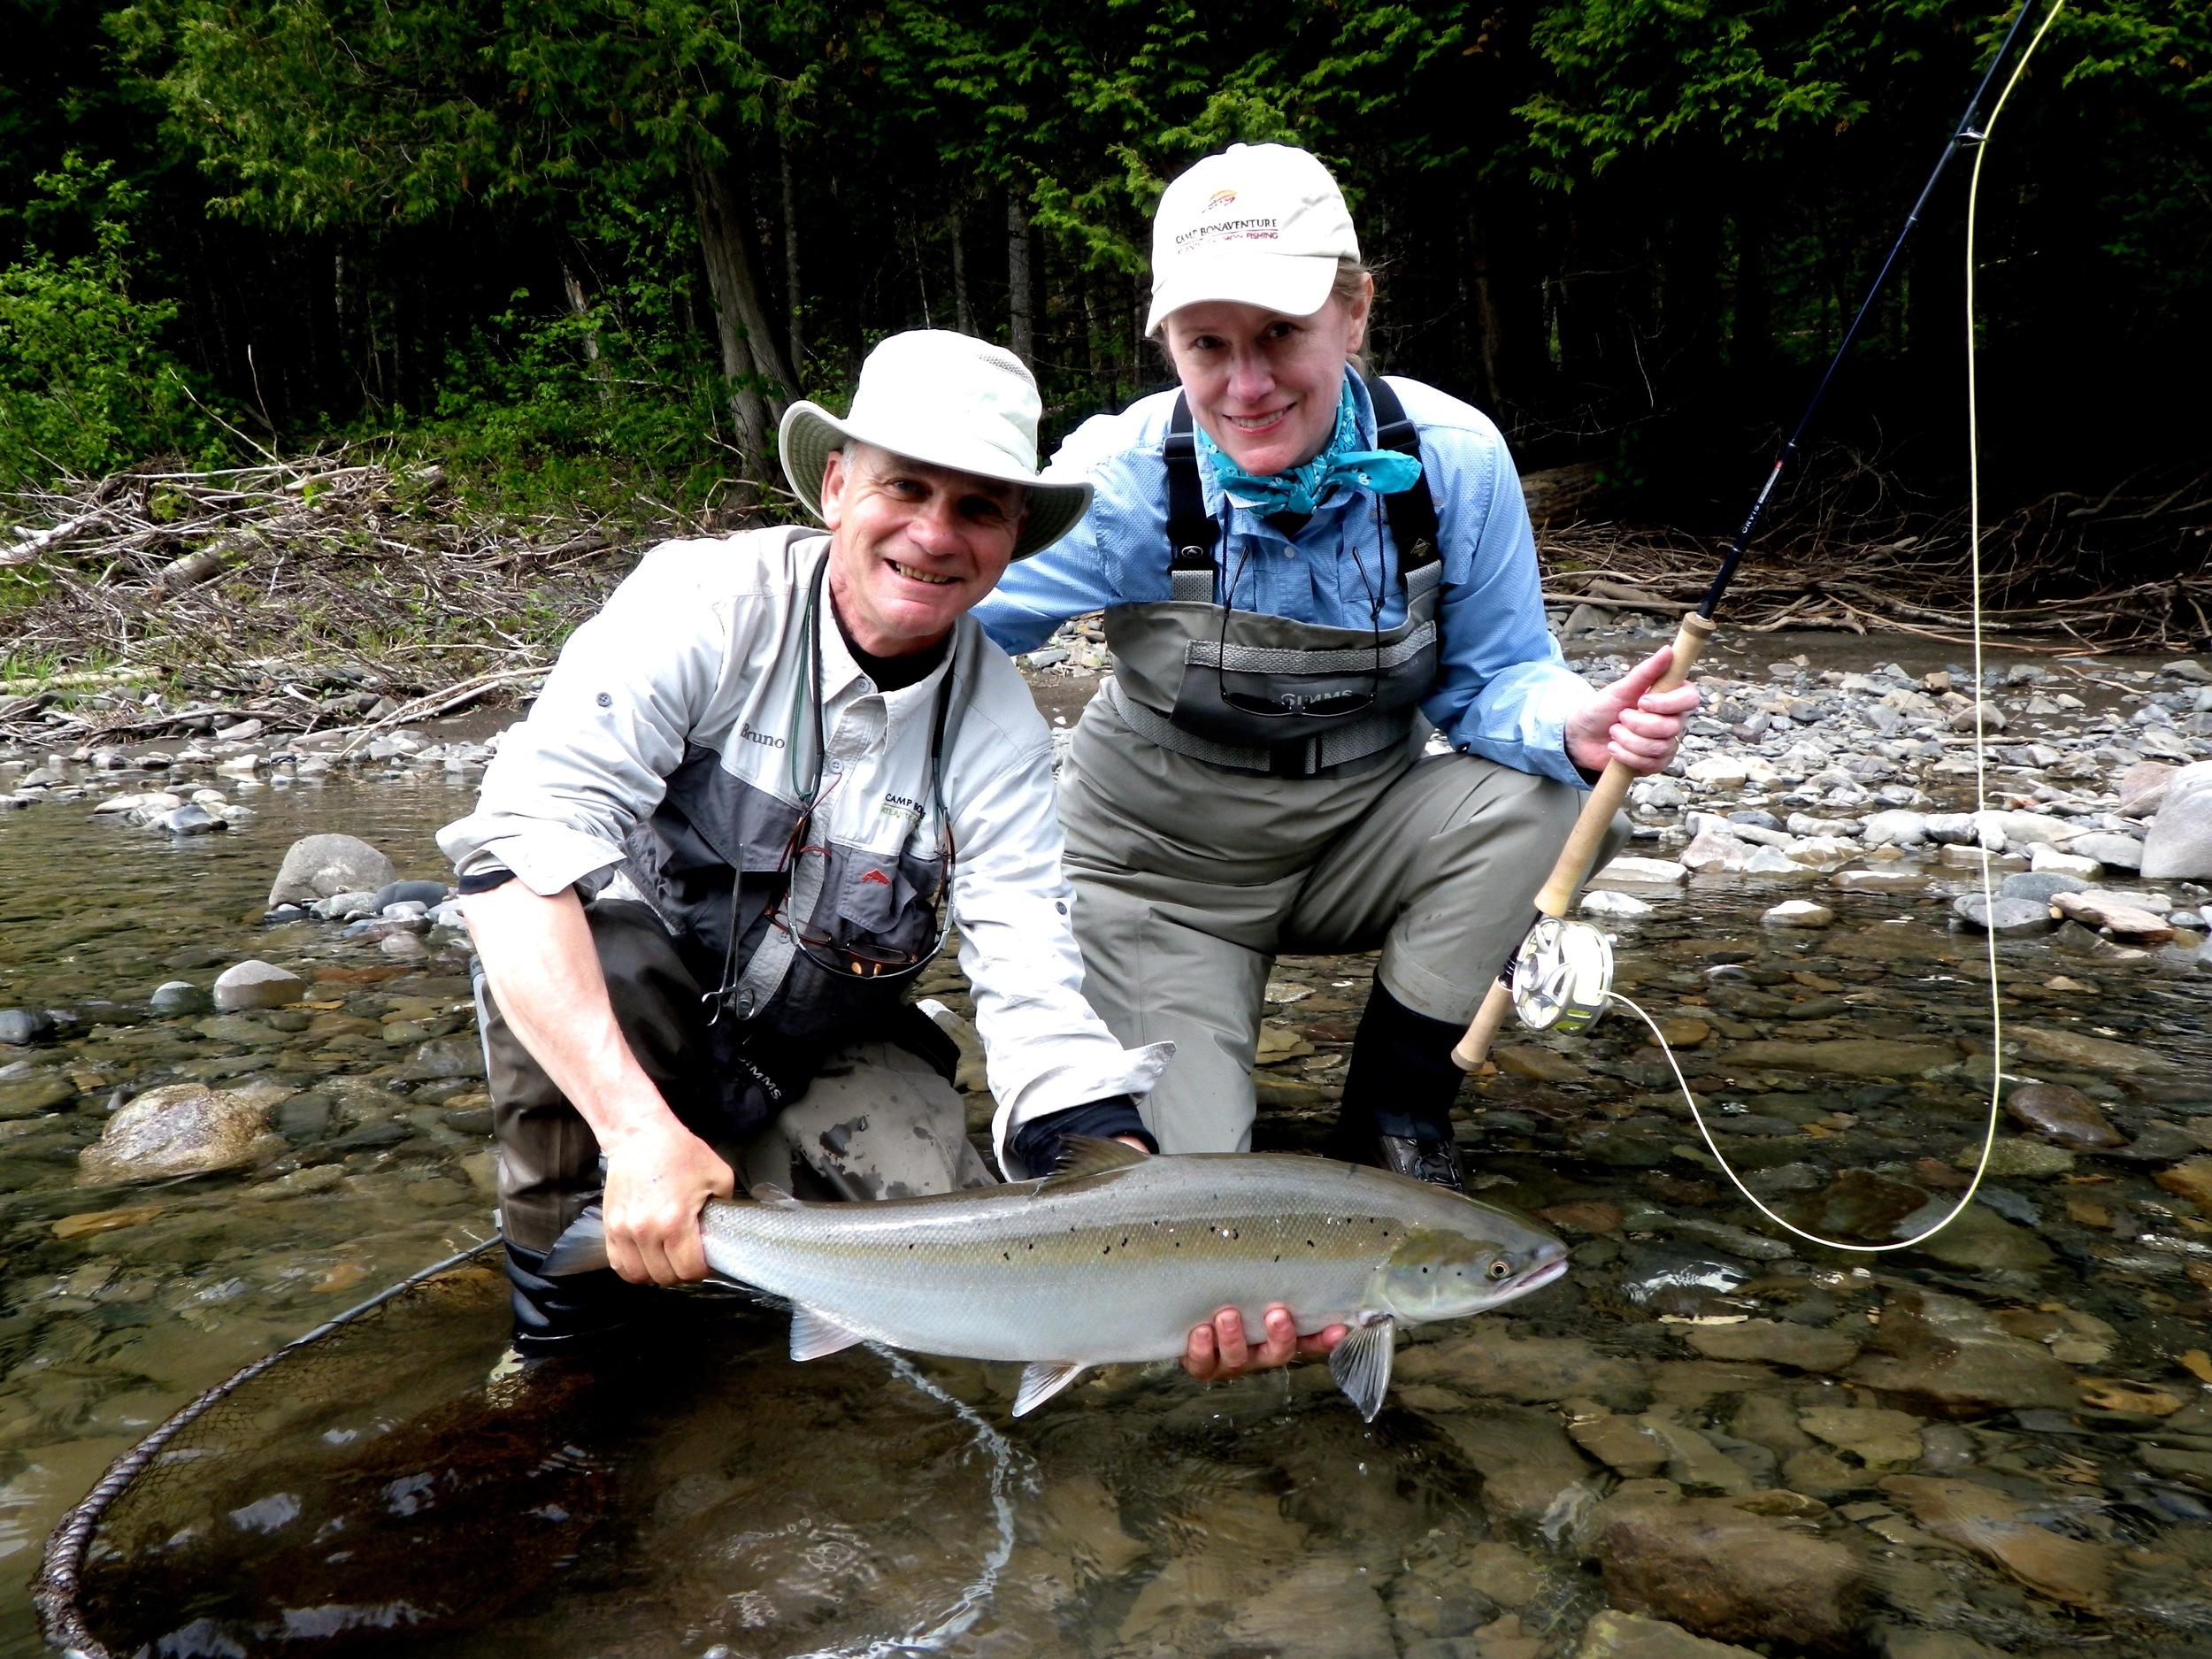 Marilou Long from Texas with Camp Bonaventure guide Bruno Lepage, Nice one Marilou!